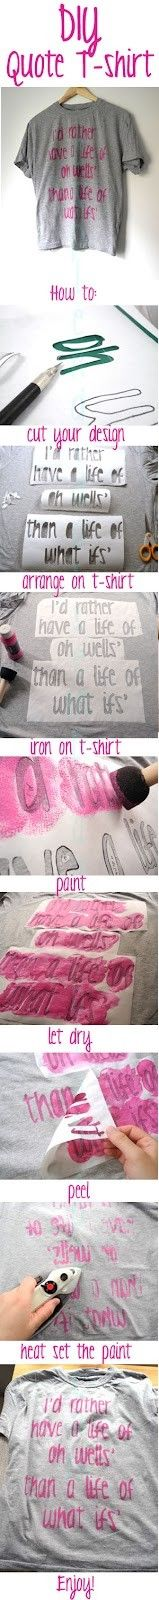 Great way to make a tshirt with whatever saying or quote you want.  Love this!  :o)